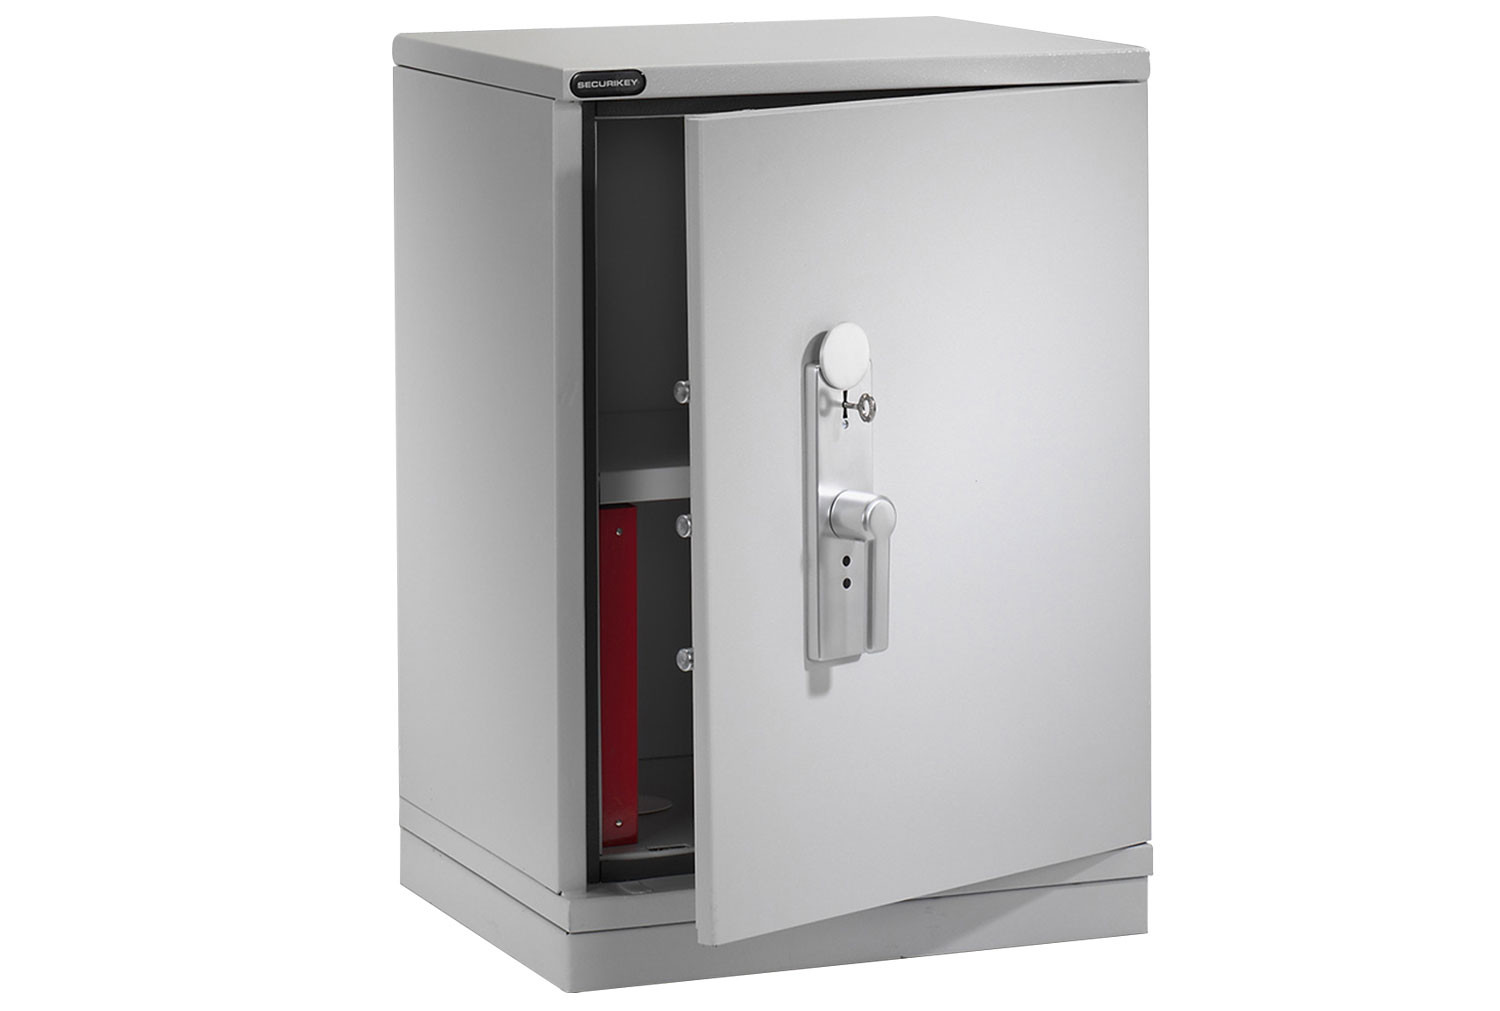 Securikey Fire Stor 1023 S1 Fire Resistant Security Cupboard (137ltrs)